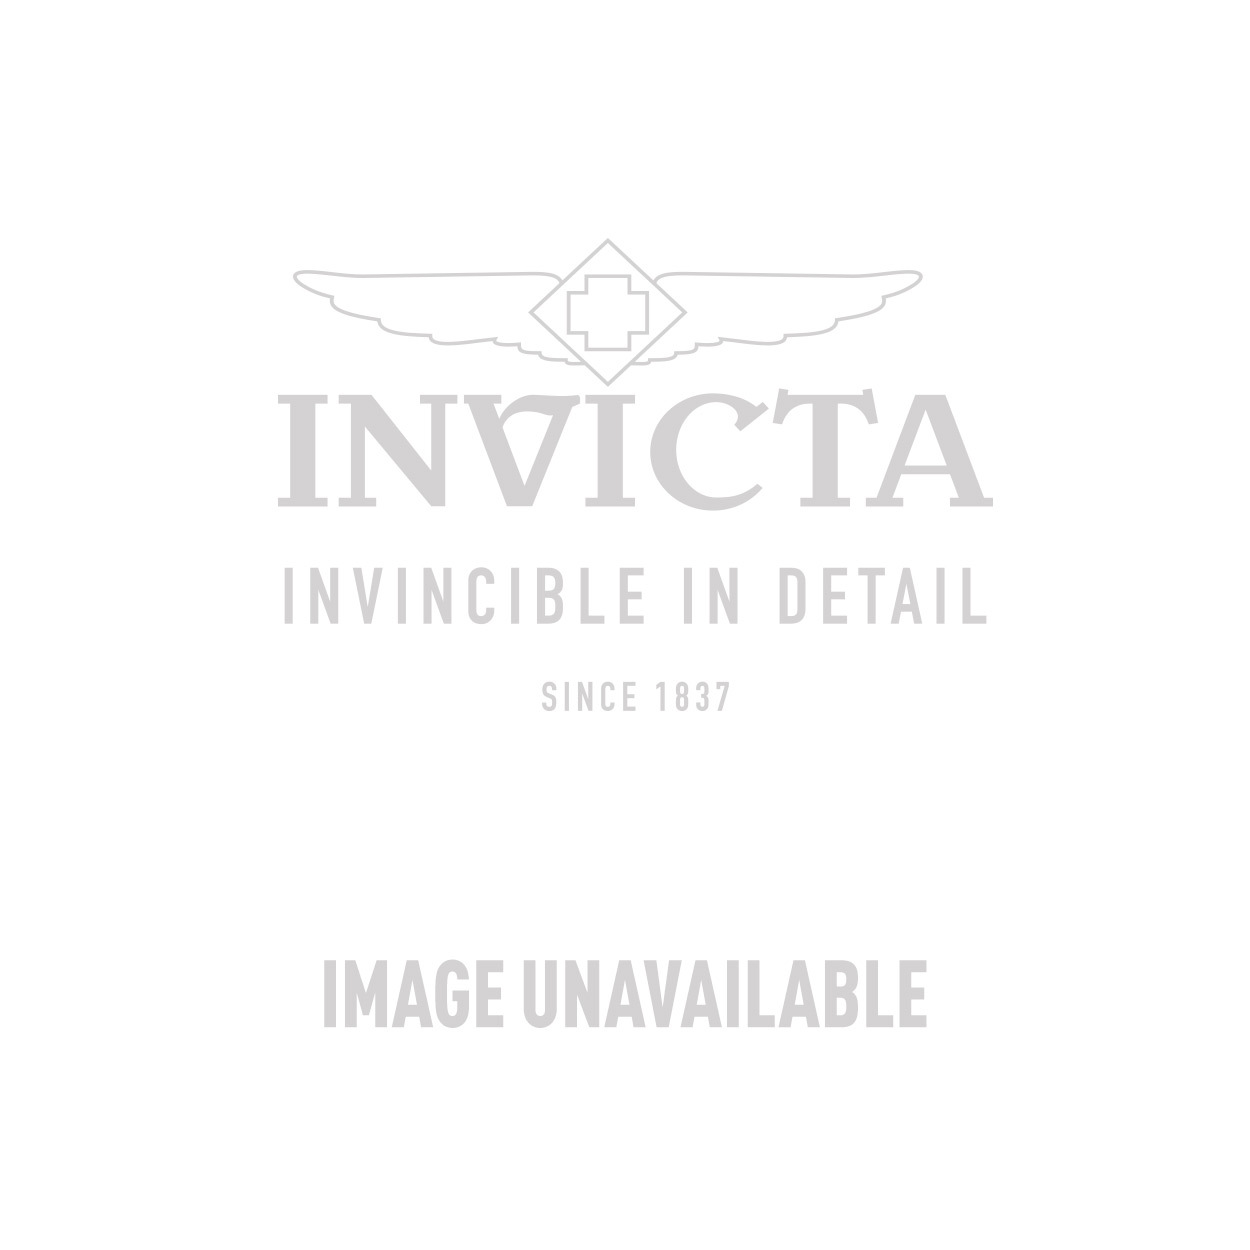 Invicta Excursion Swiss Made Quartz Watch - Gold case with Gold tone Stainless Steel band - Model 6257